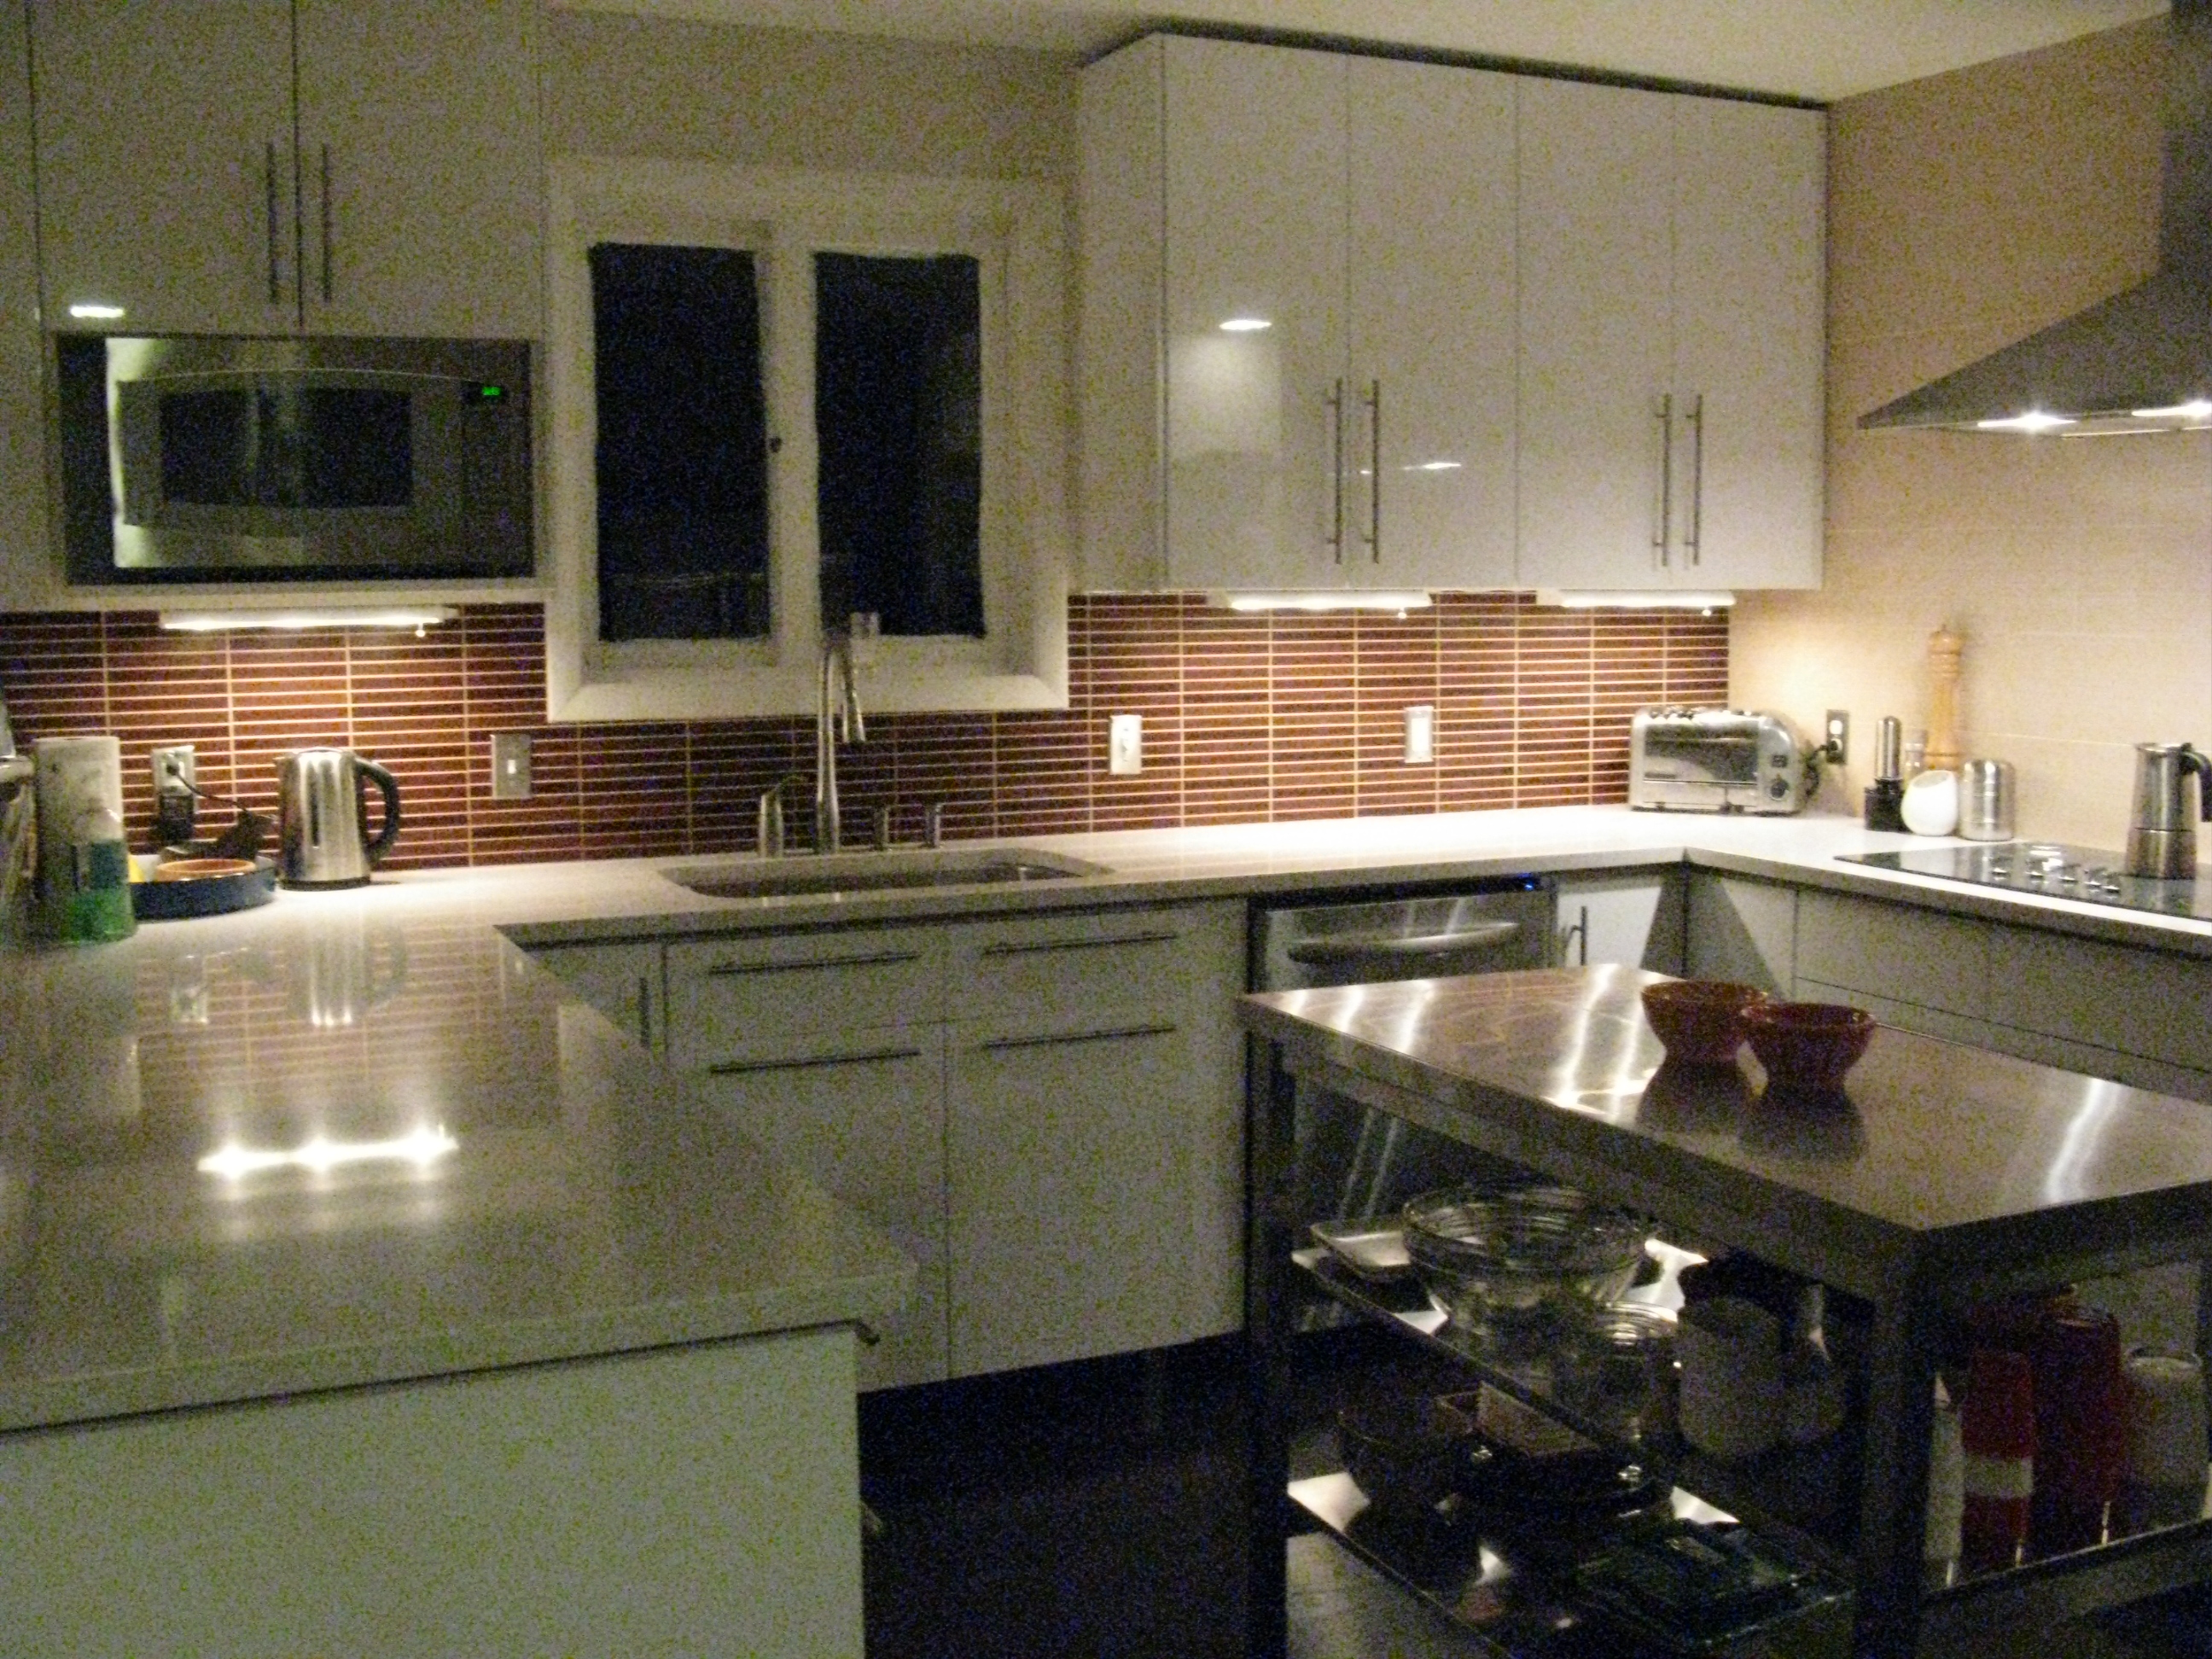 Kitchen Renovation Budget Budget Kitchen Renovation Myhomeideas Renovation | M O D F R U G A L - Budget Kitchen Renovations